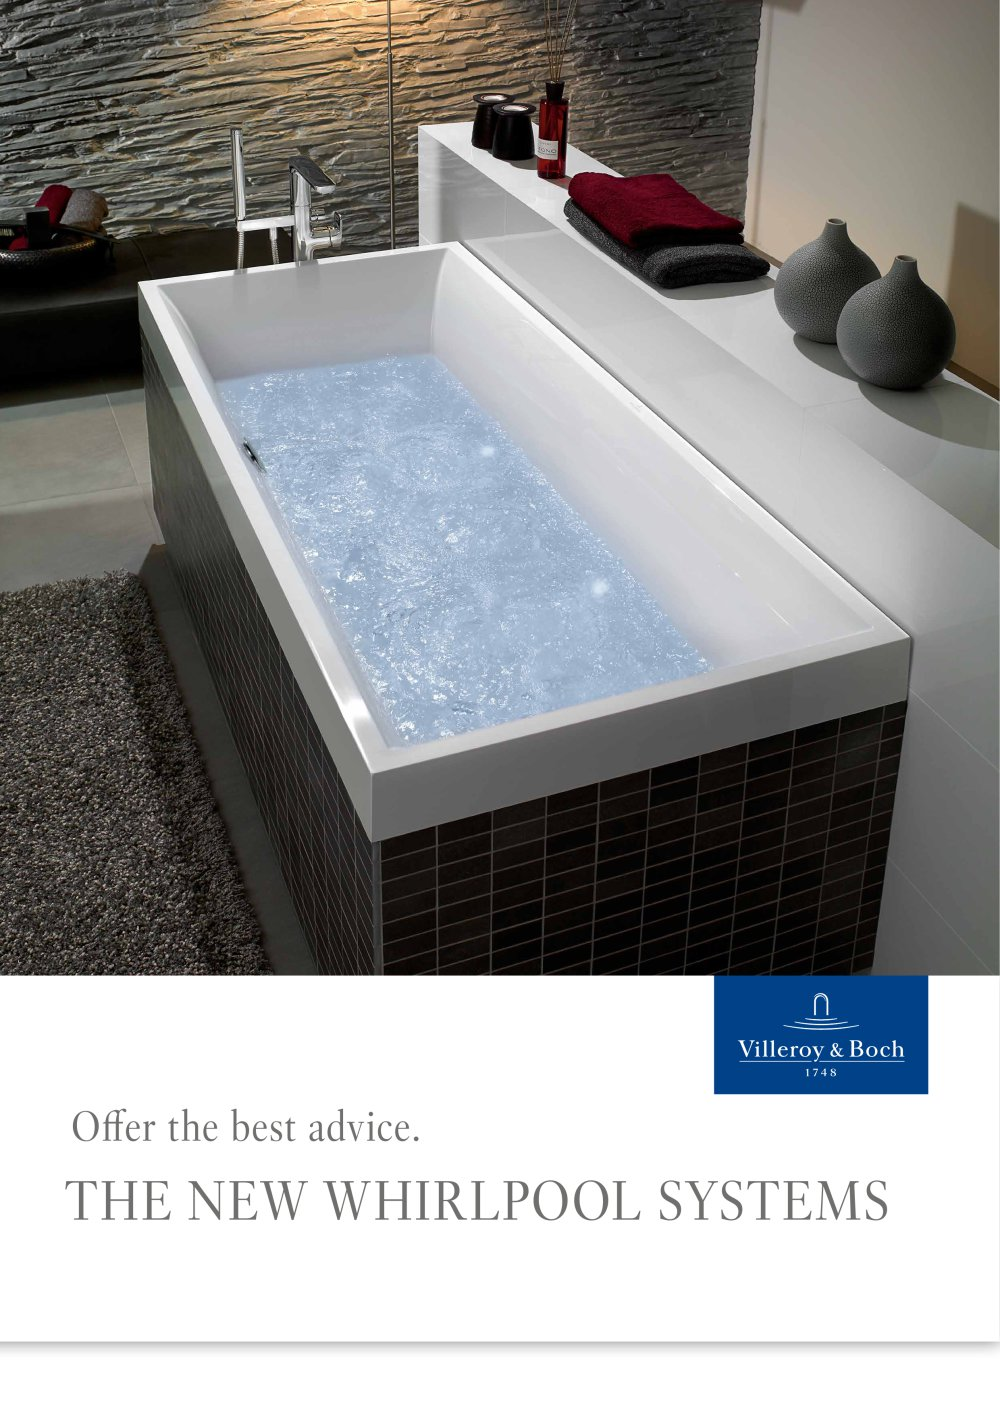 Whirlpool systems - Villeroy & Boch - PDF Catalogues | Documentation ...